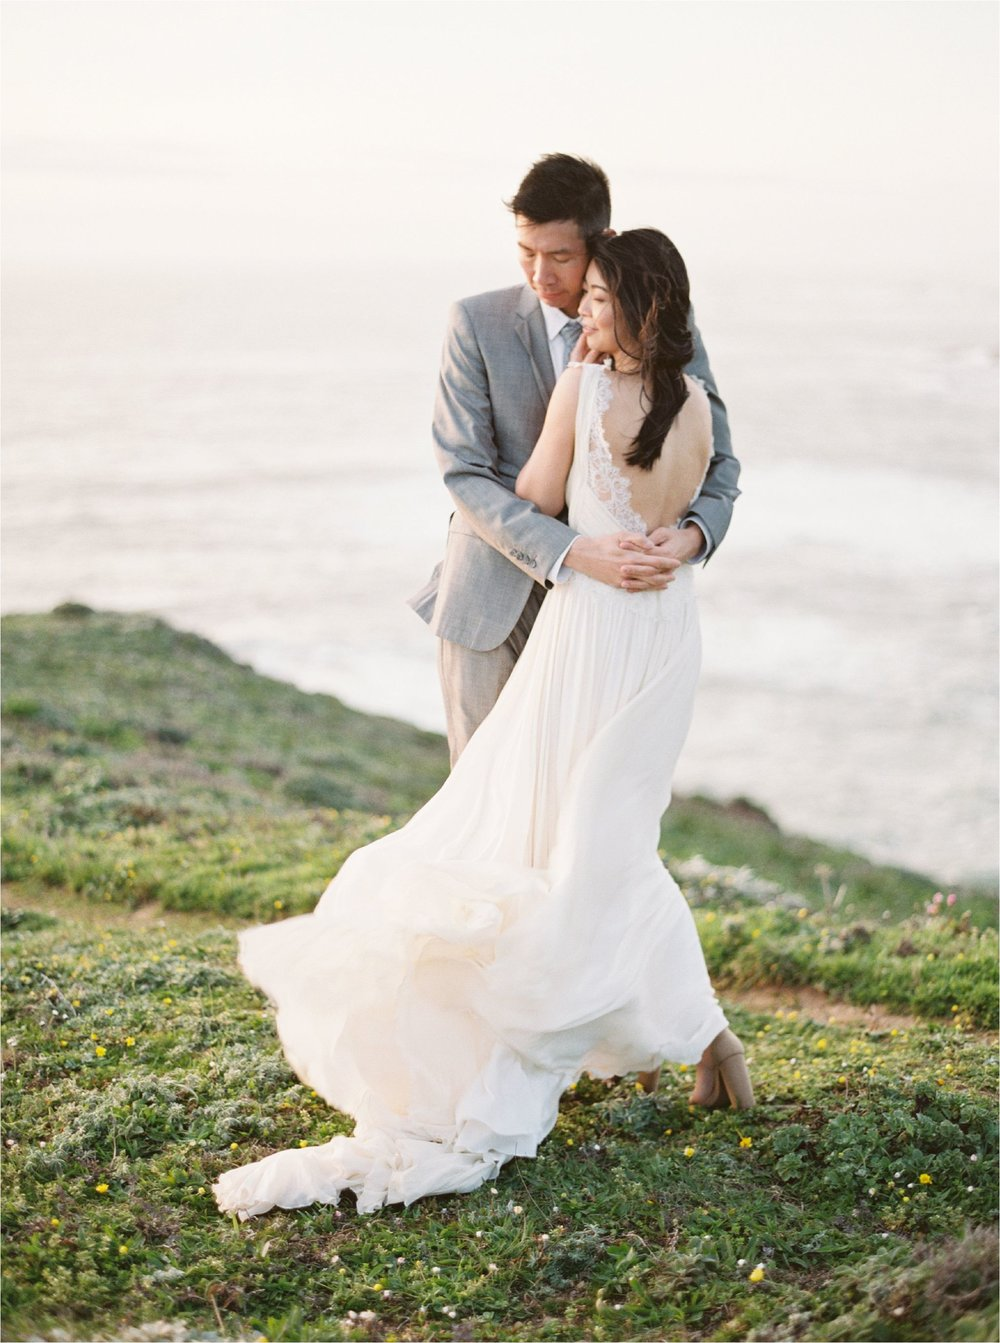 california_coast_mendicino_cuffeyscoveranch_wedding_elopement_photography00075.jpg